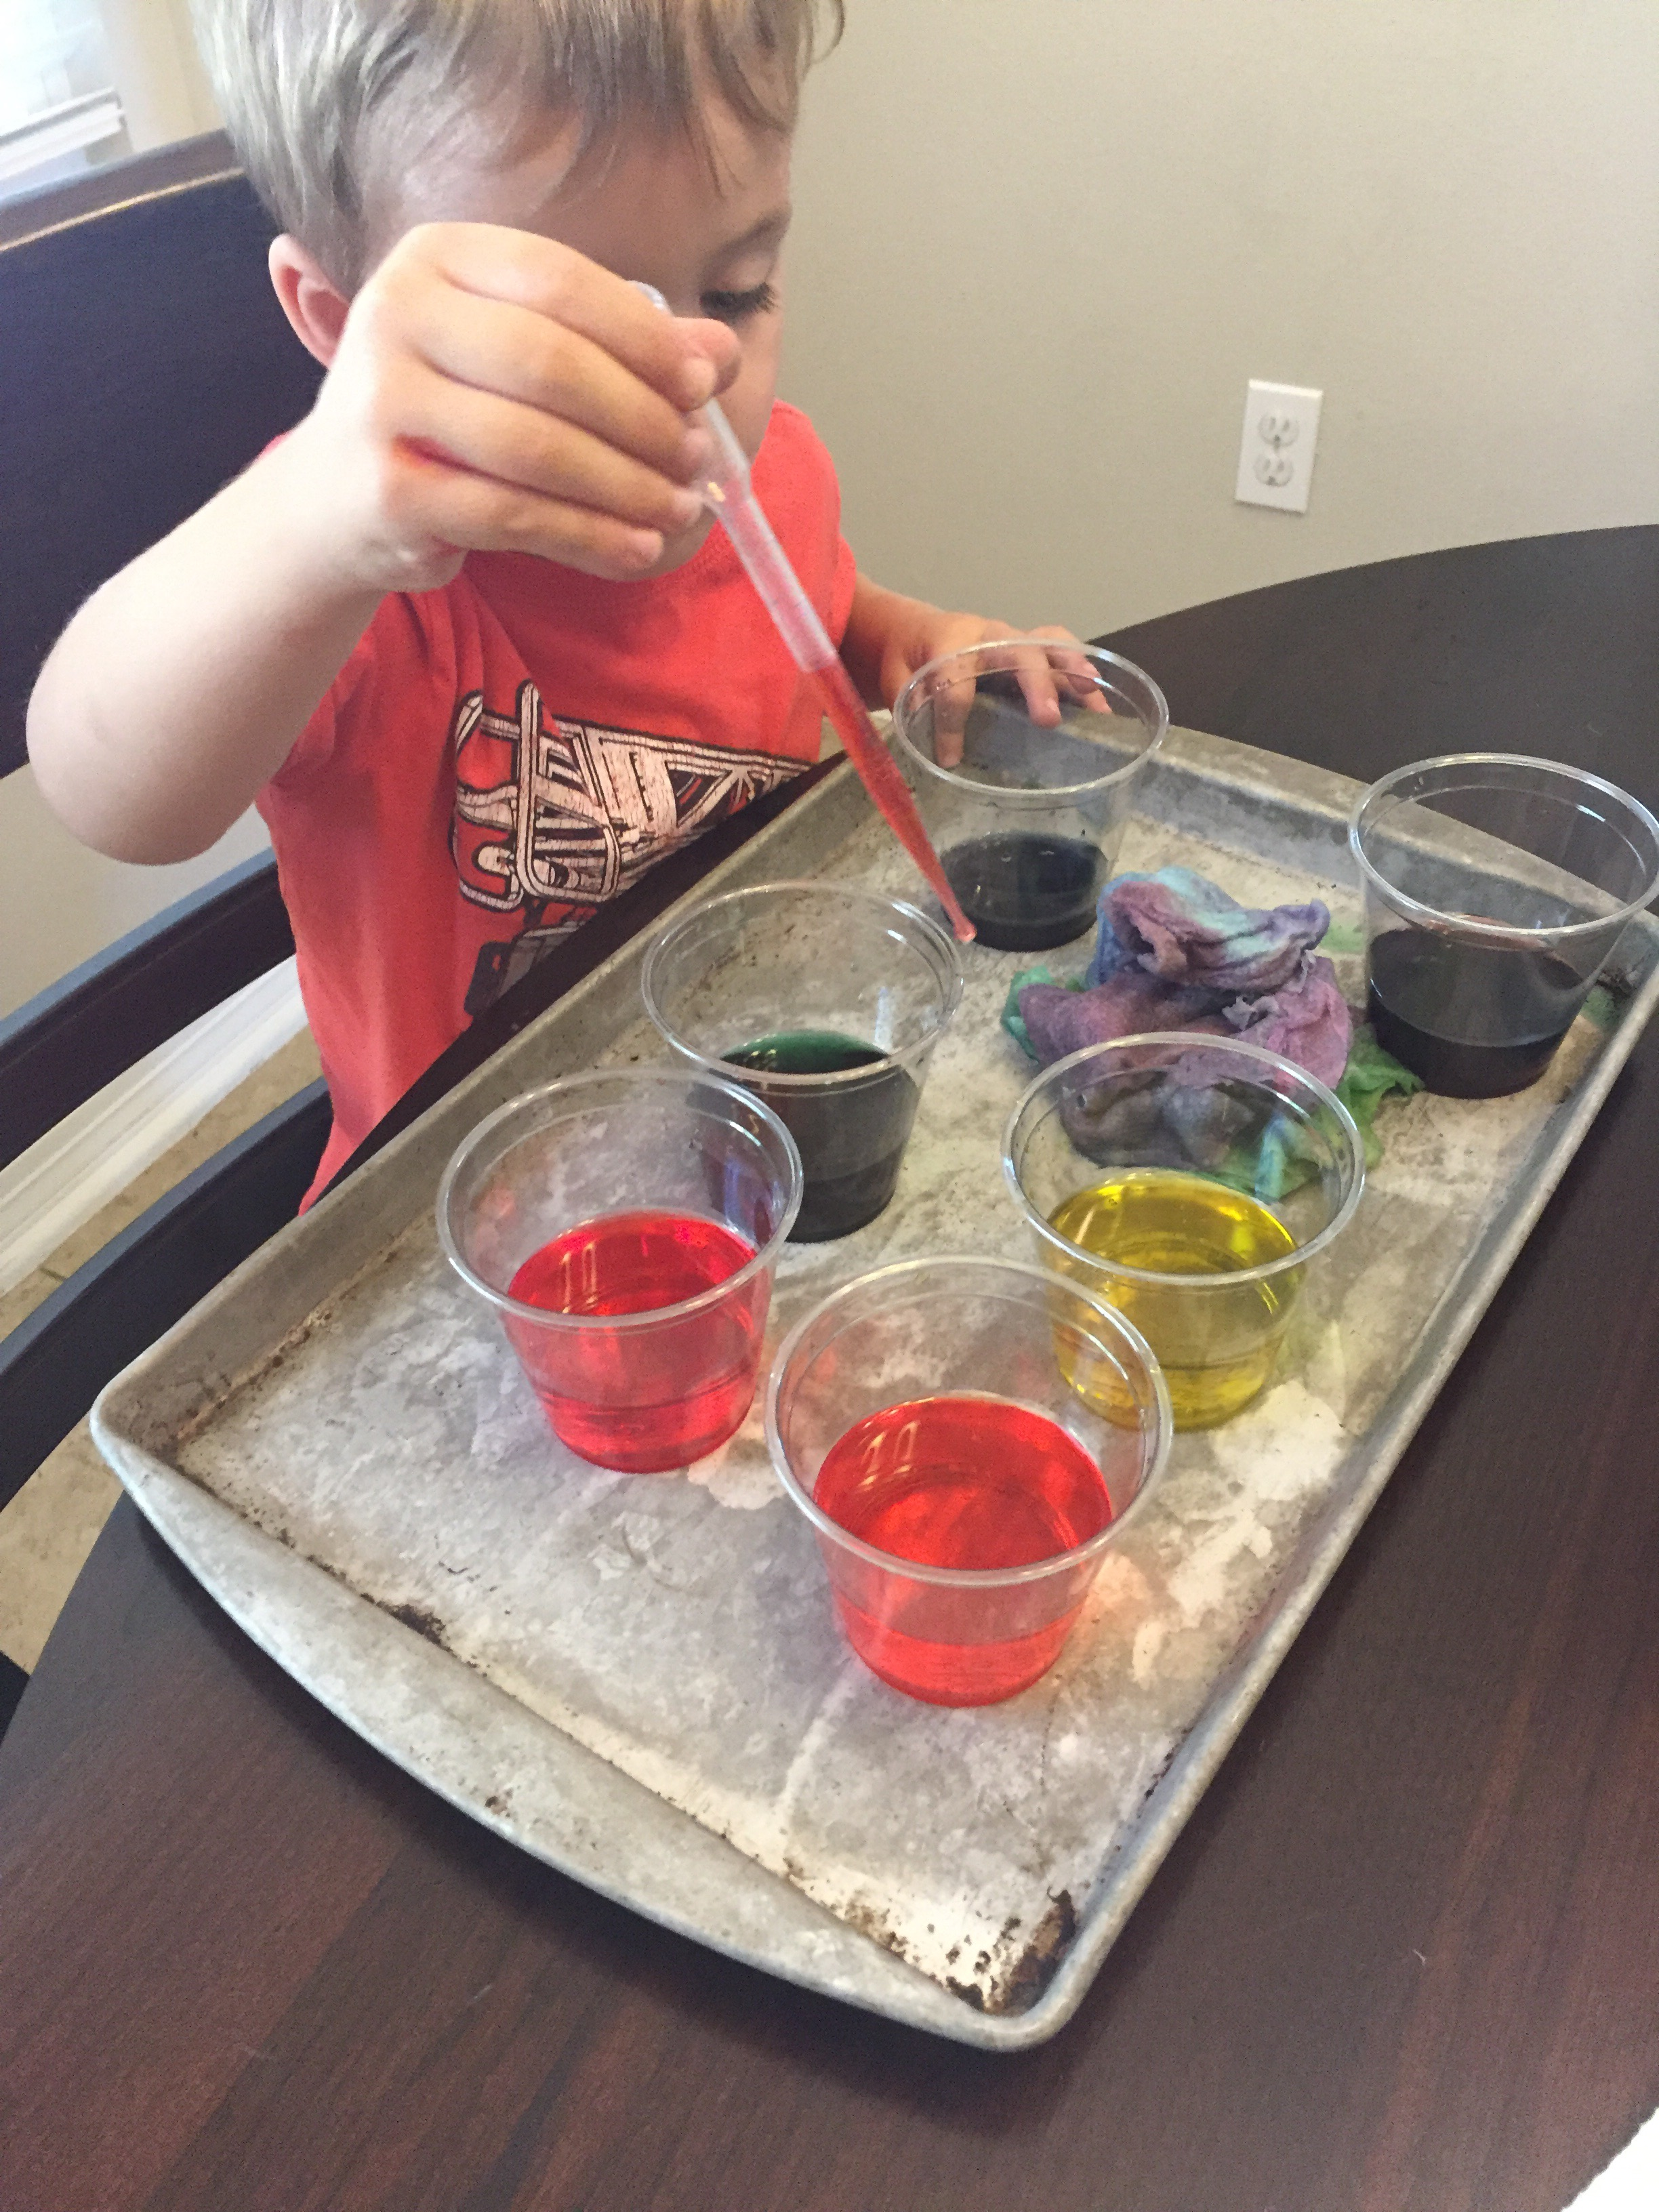 Color Mixing: Walking Water Rainbow | She Loves Science